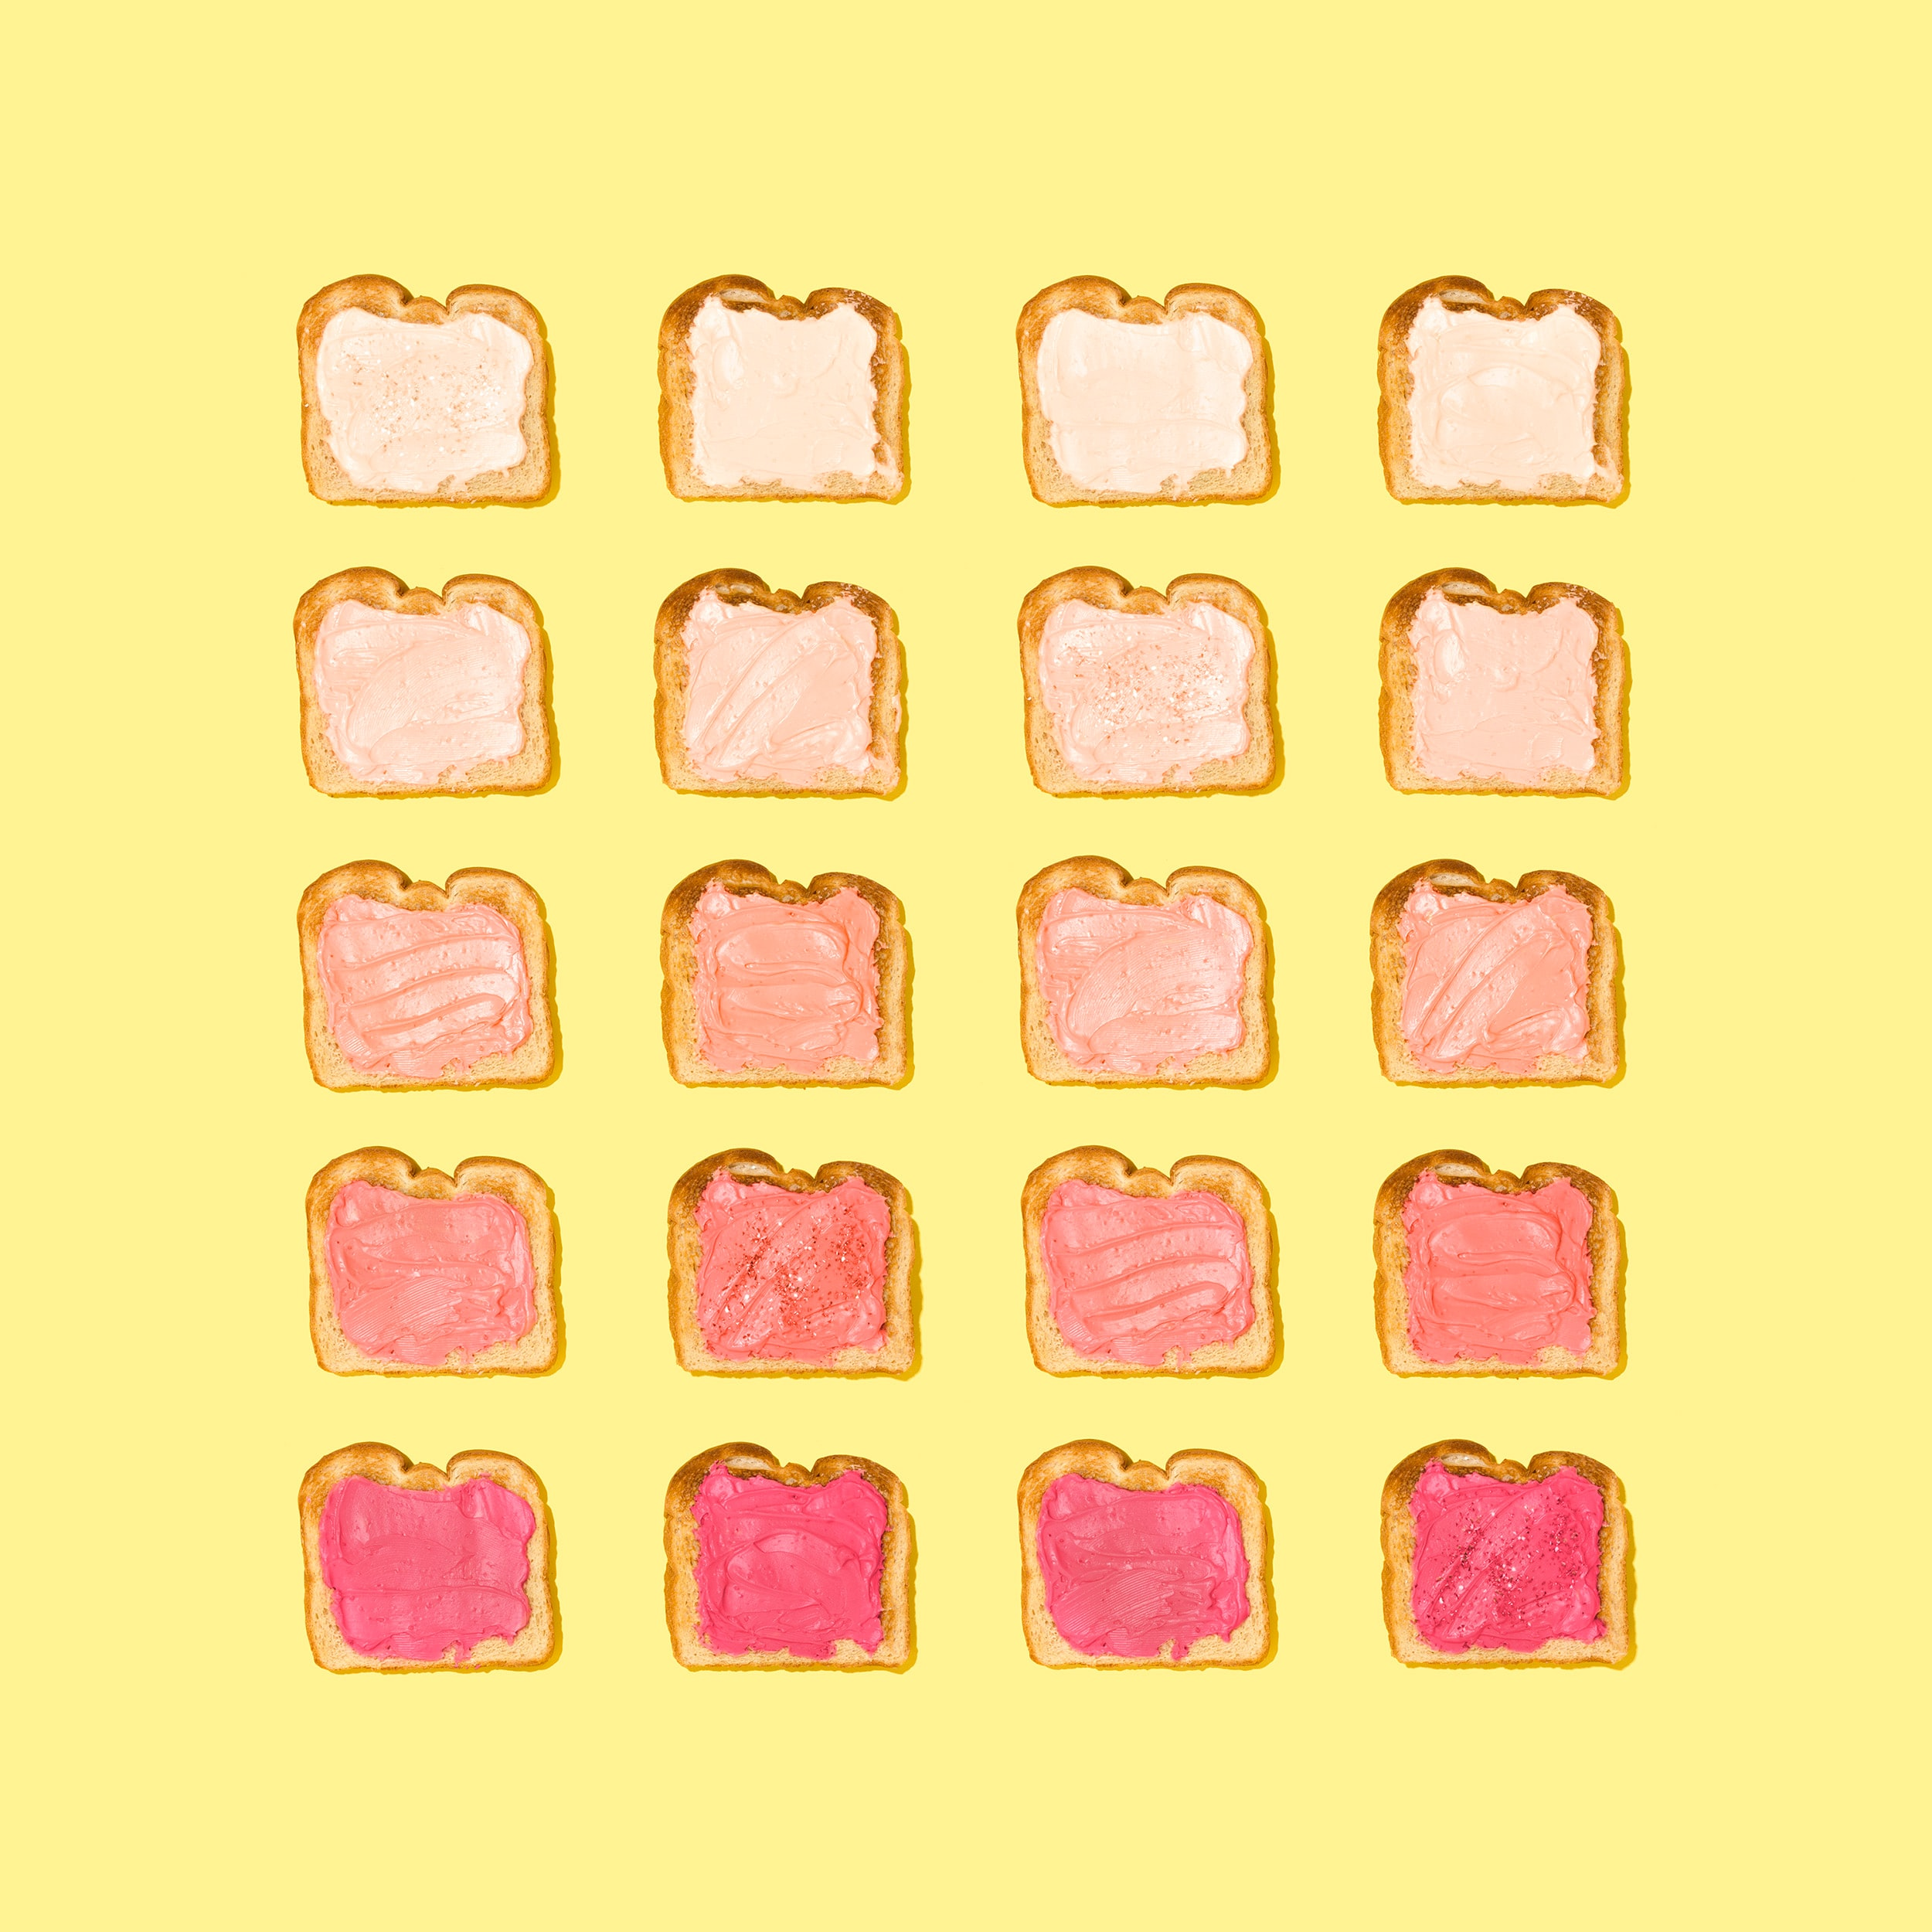 A design including toast slices that align with each other